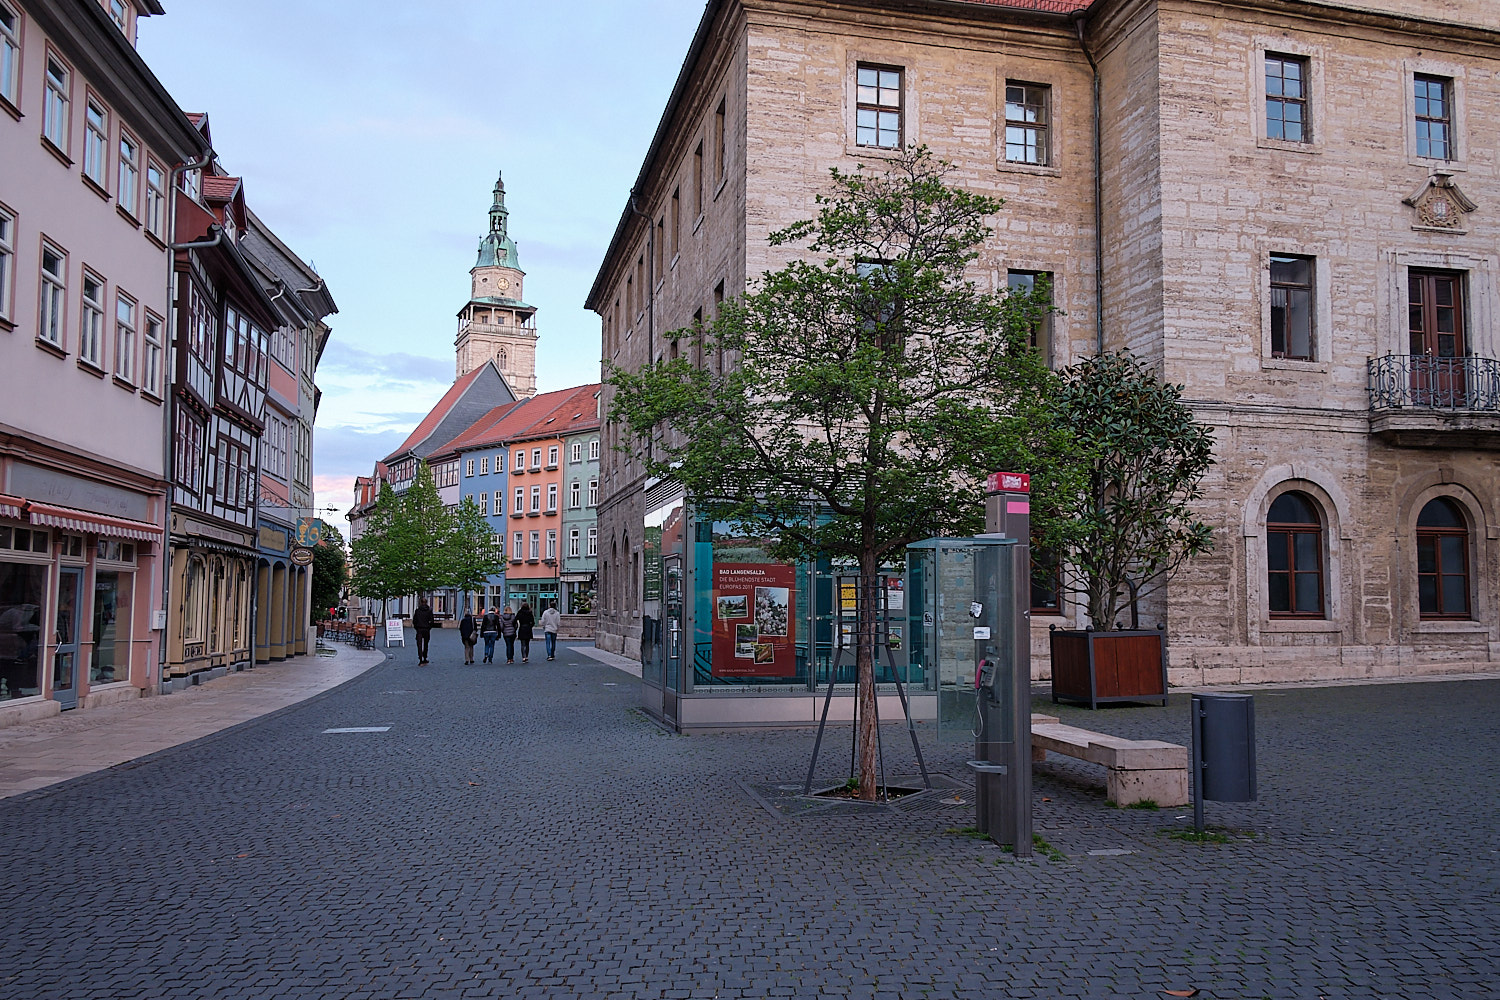 Pedestrian zone and buildings facades of Bad Langensalza, Germany